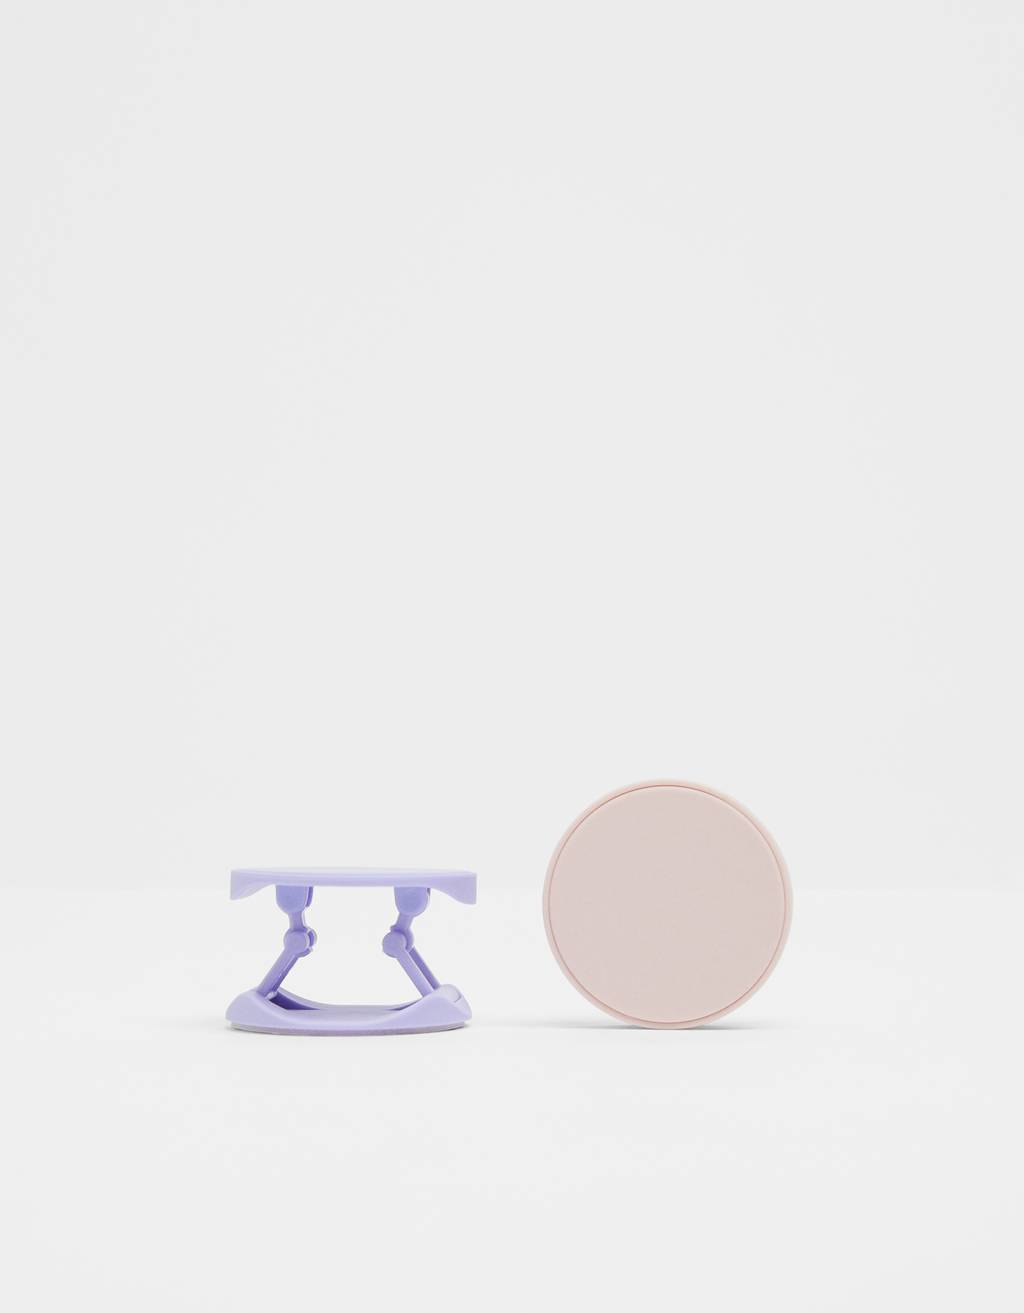 Pastel phone stand